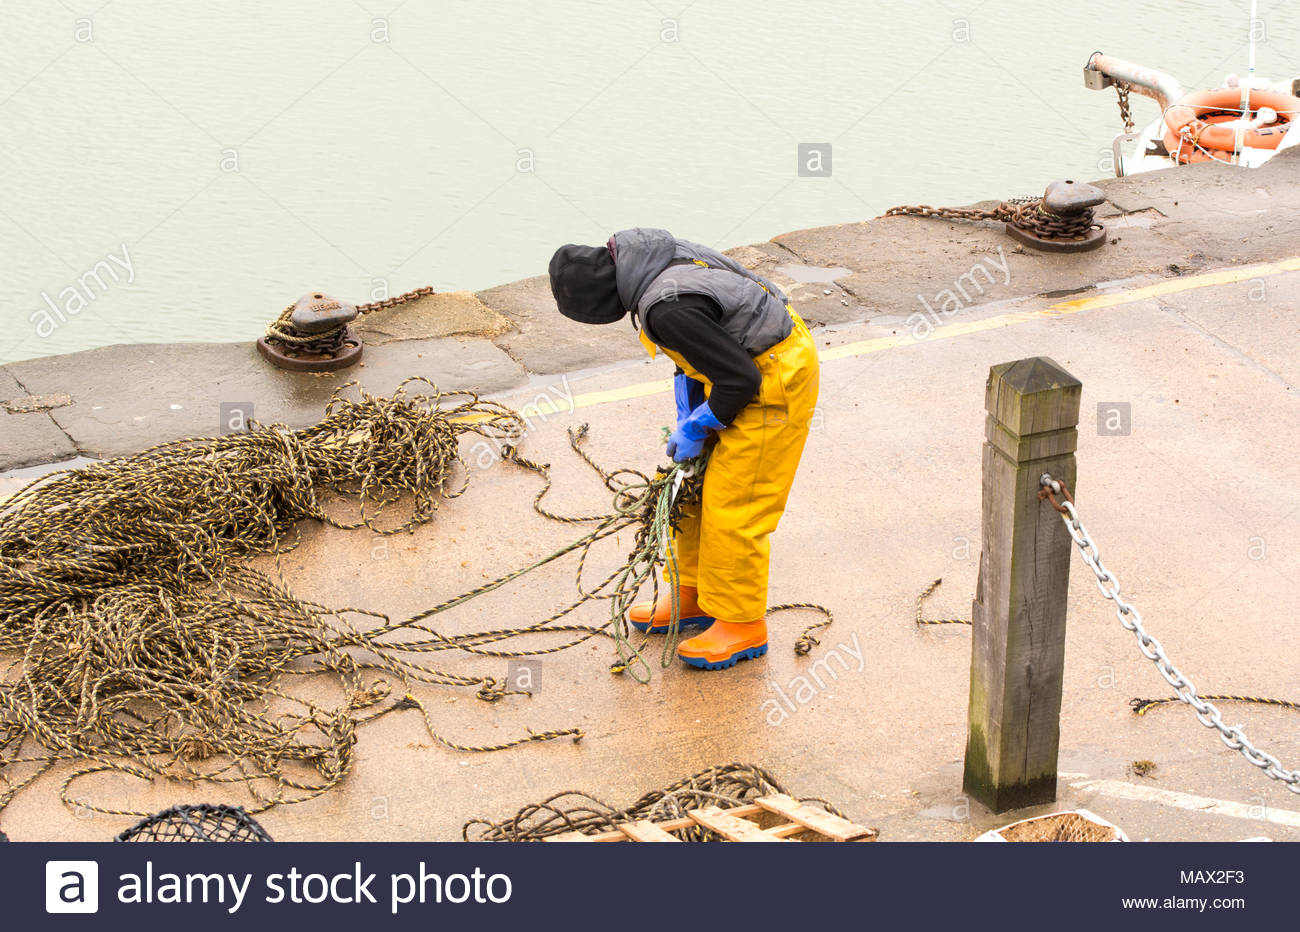 Man working on the quayside - Stock Image